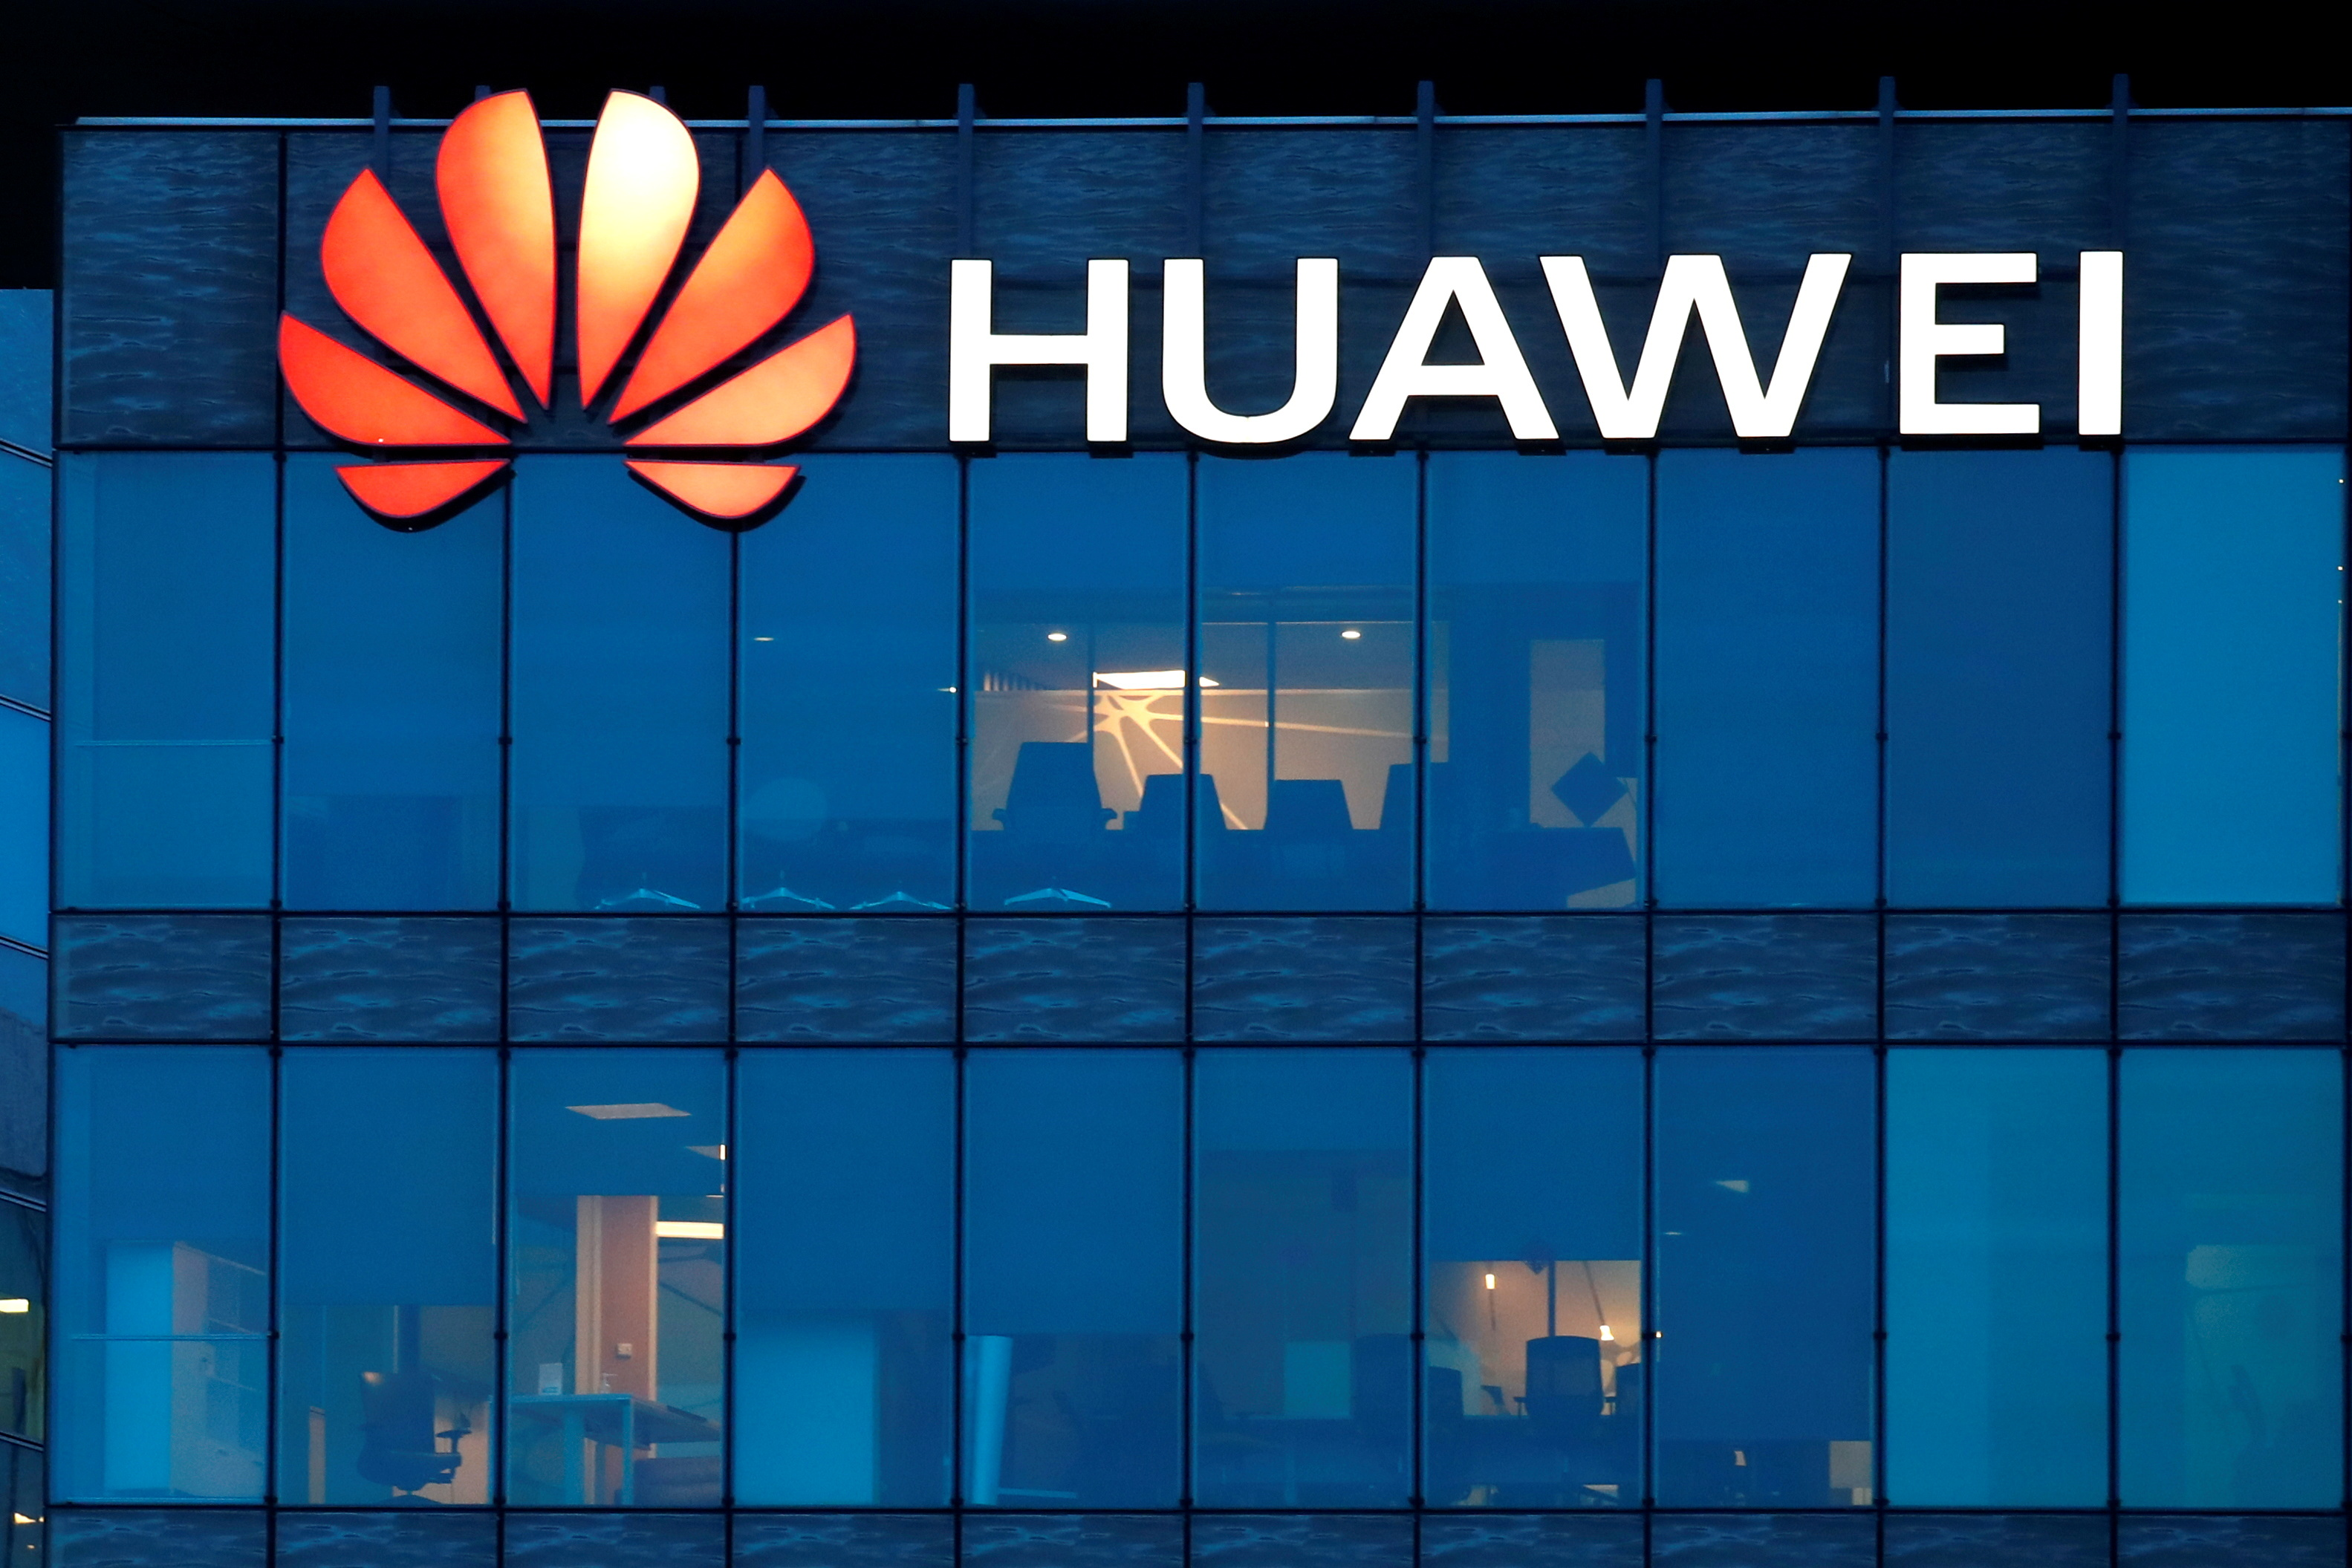 A view shows a Huawei logo at Huawei Technologies France headquarters in Boulogne-Billancourt near Paris, France, February 17, 2021. REUTERS/Gonzalo Fuentes/File Photo